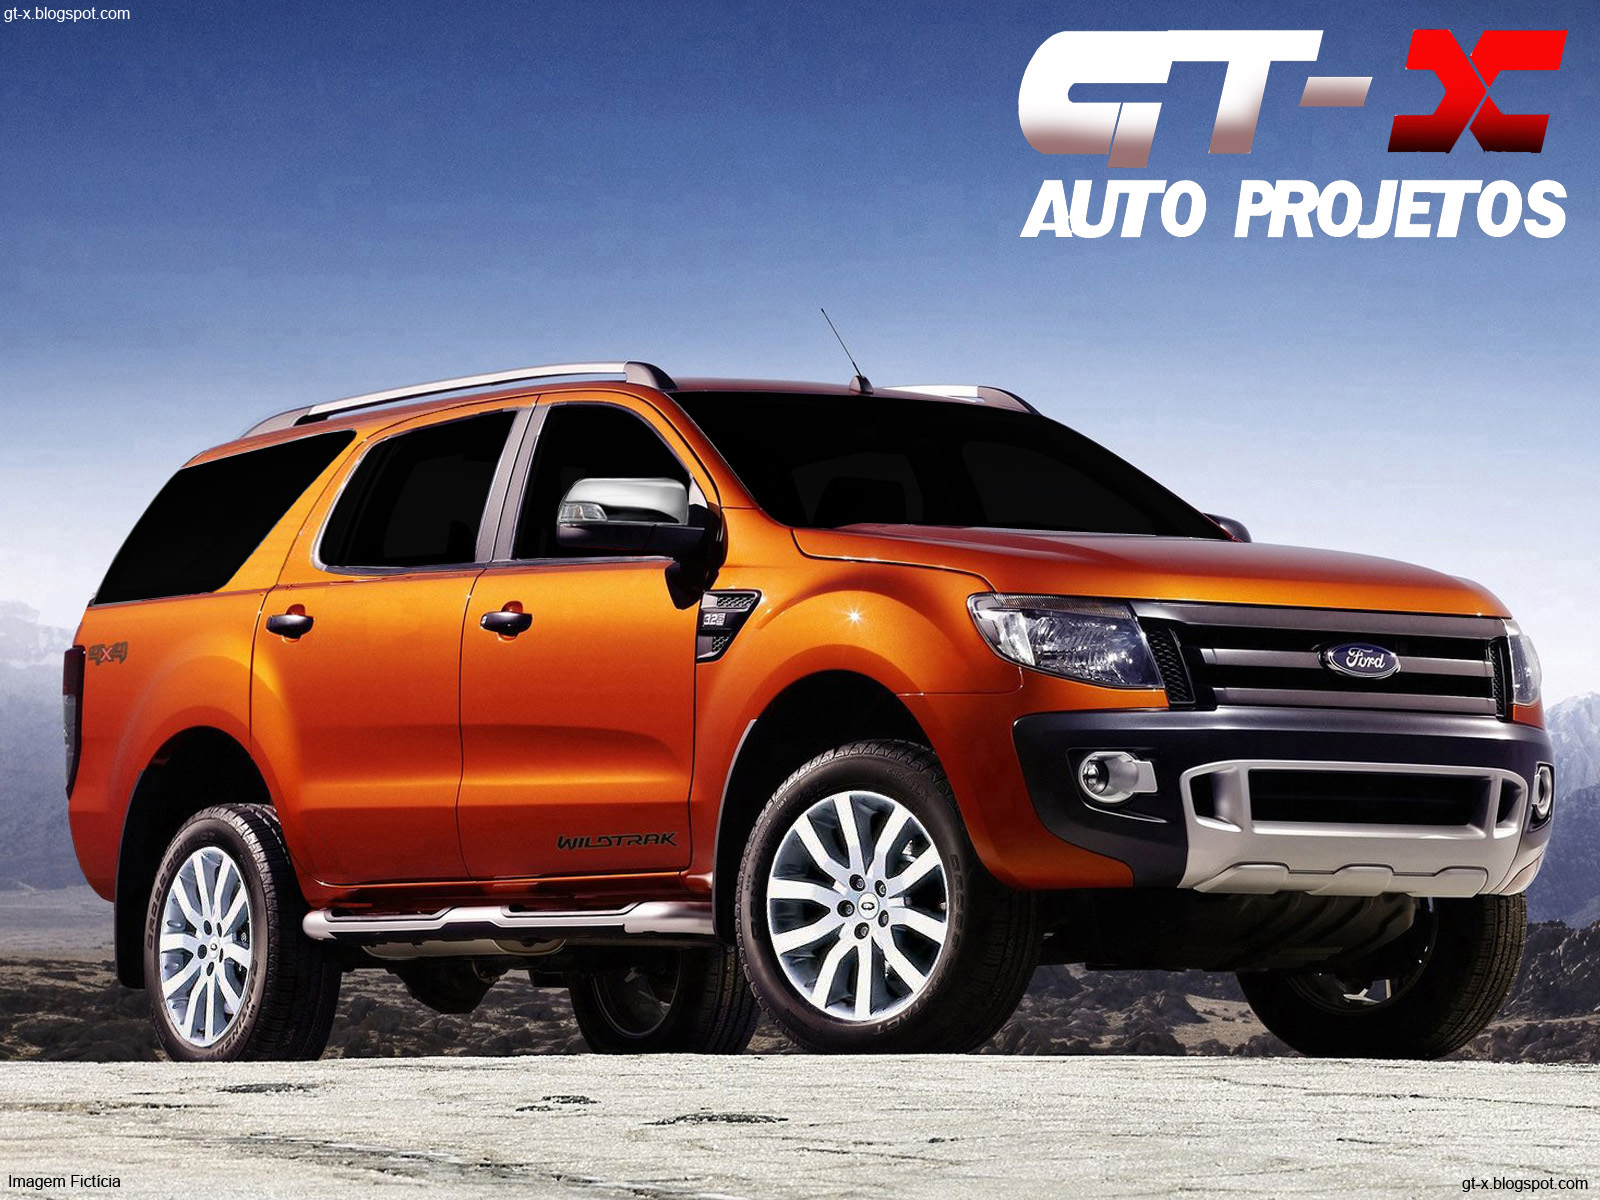 Ford Ranger SUV 2014 [Photos] ~ Cheftonio's Blog